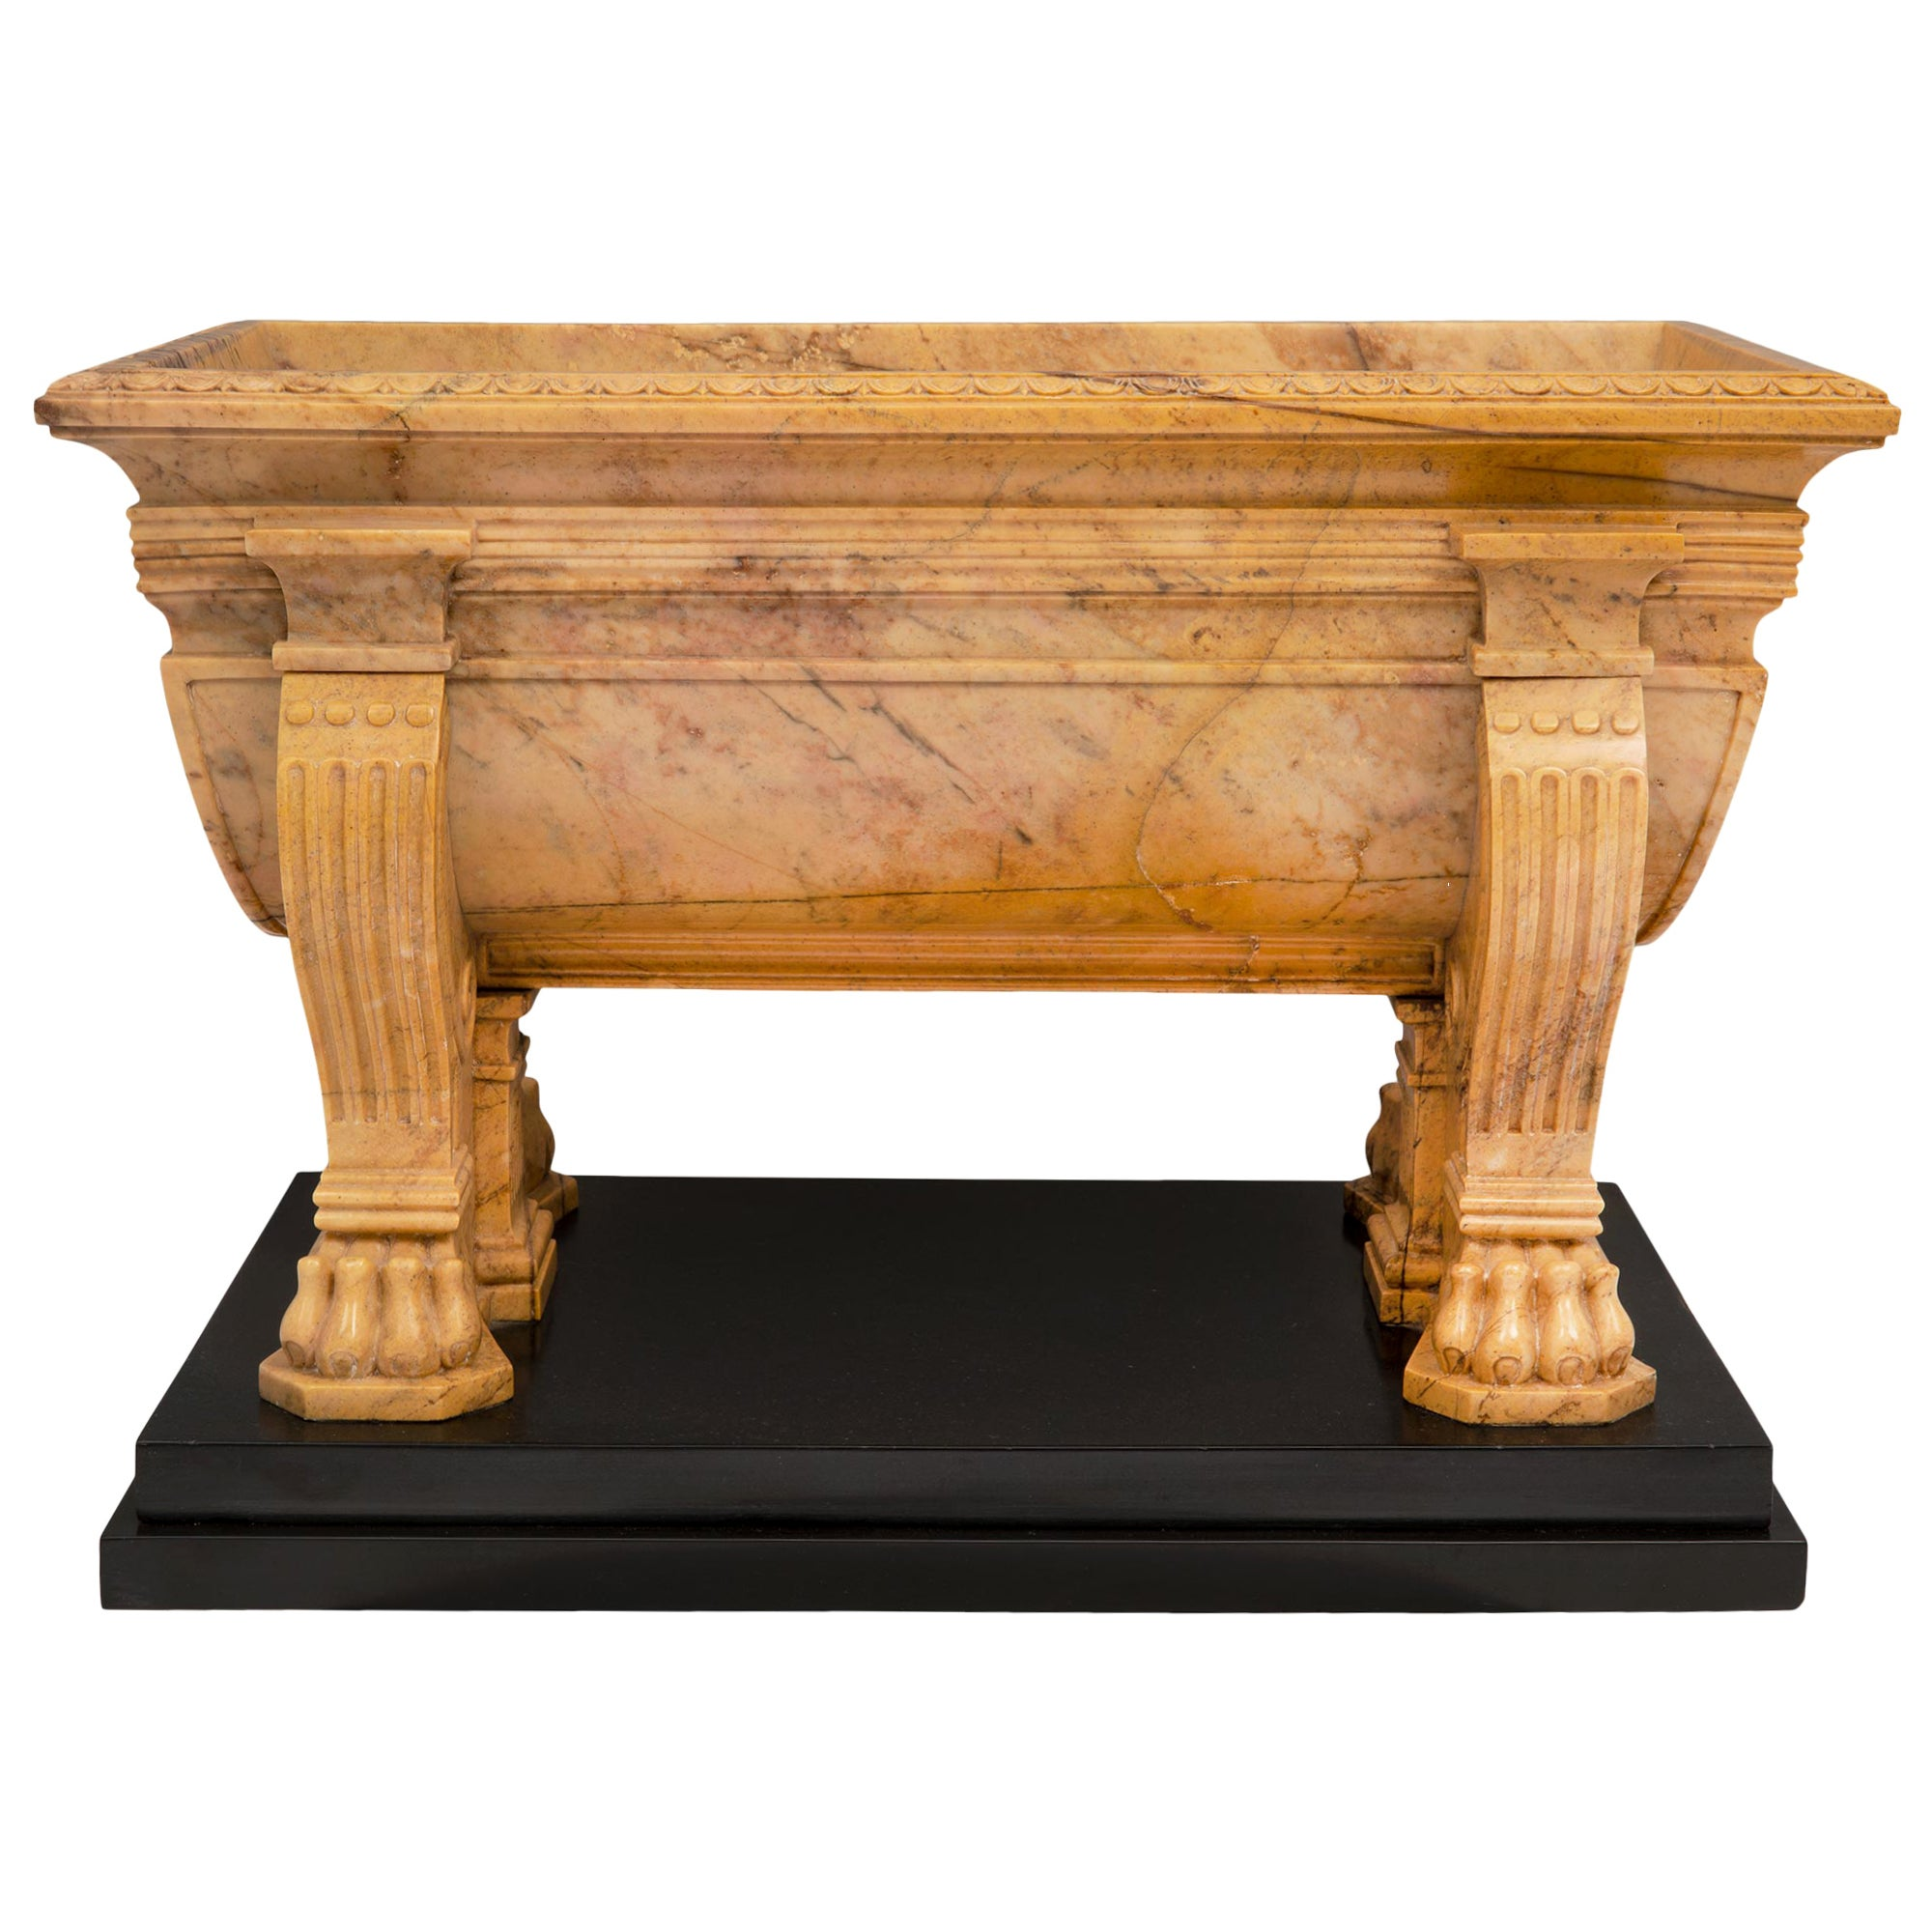 Italian 19th Century Neoclassical Style Centerpiece Planter